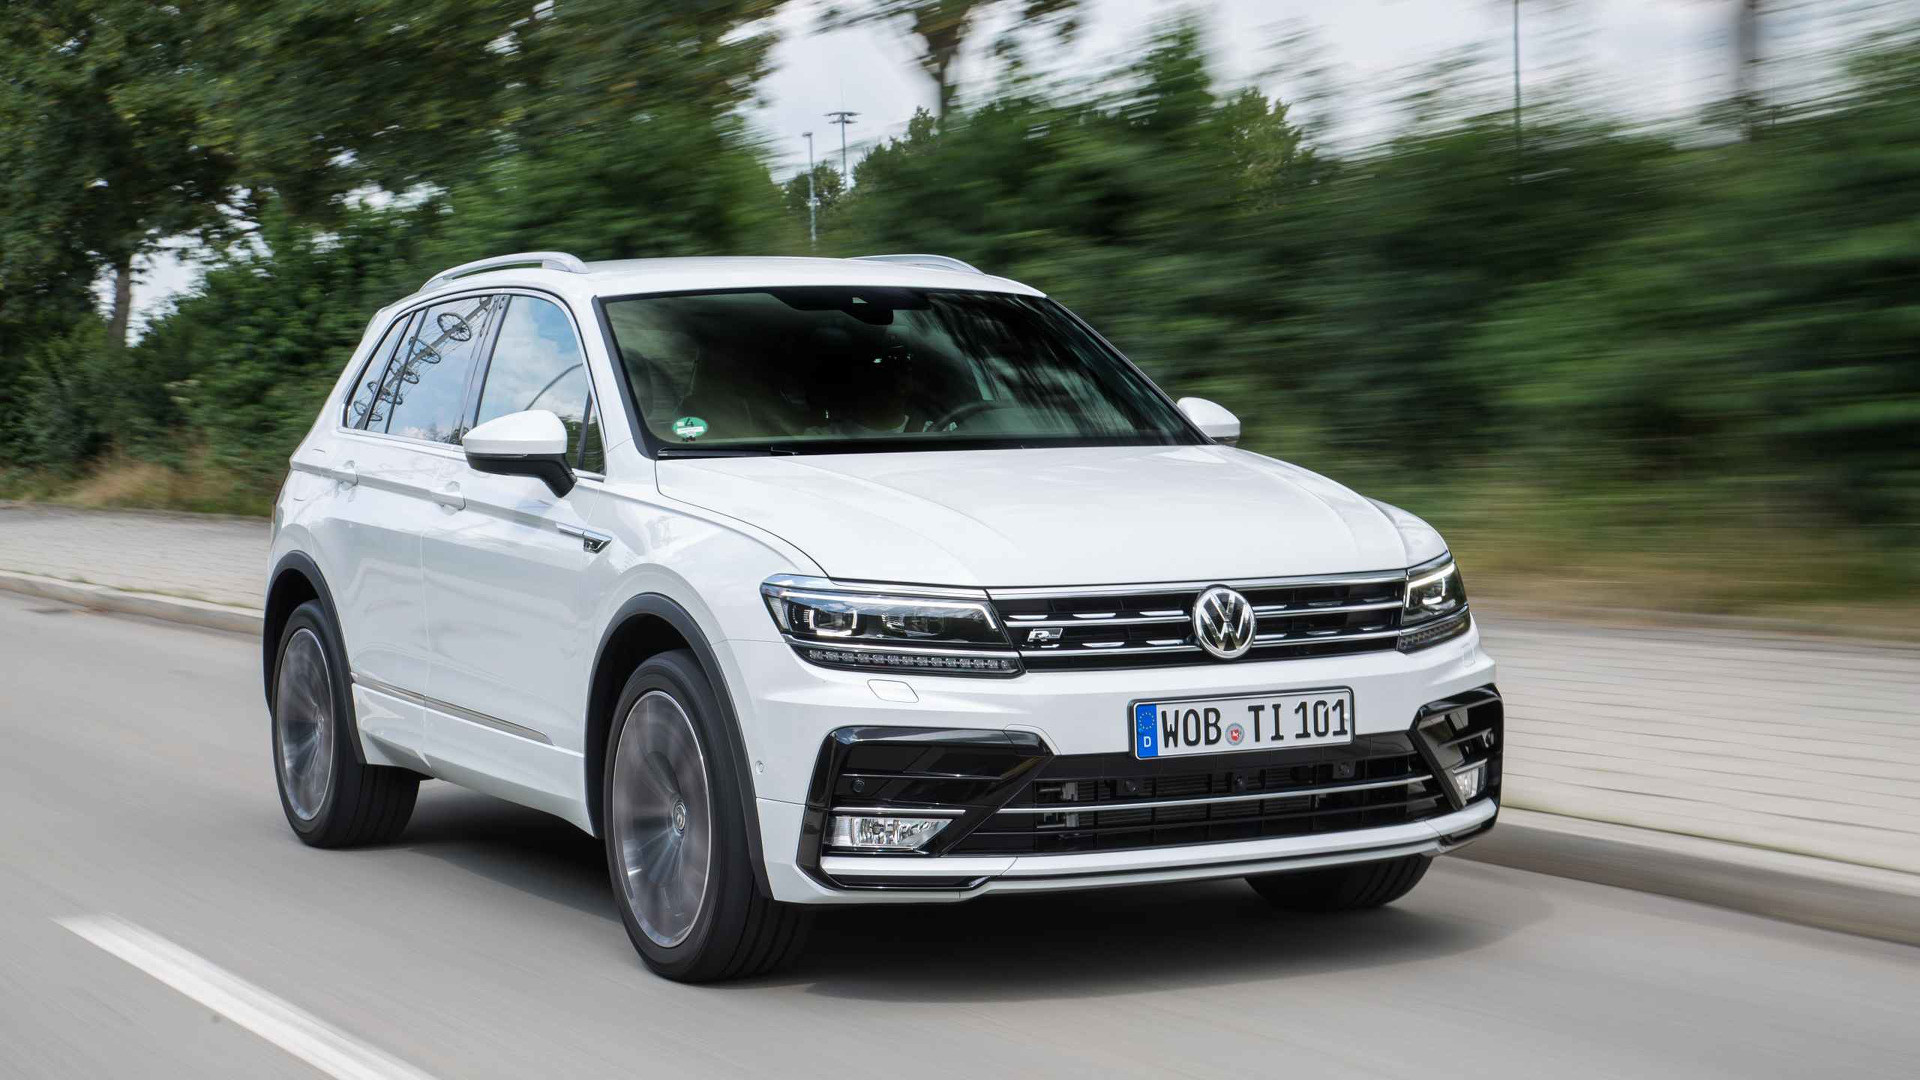 Volkswagen Tiguan Diesel 2 0 Tdi Bmt 150 Se Nav 5dr For Sale At